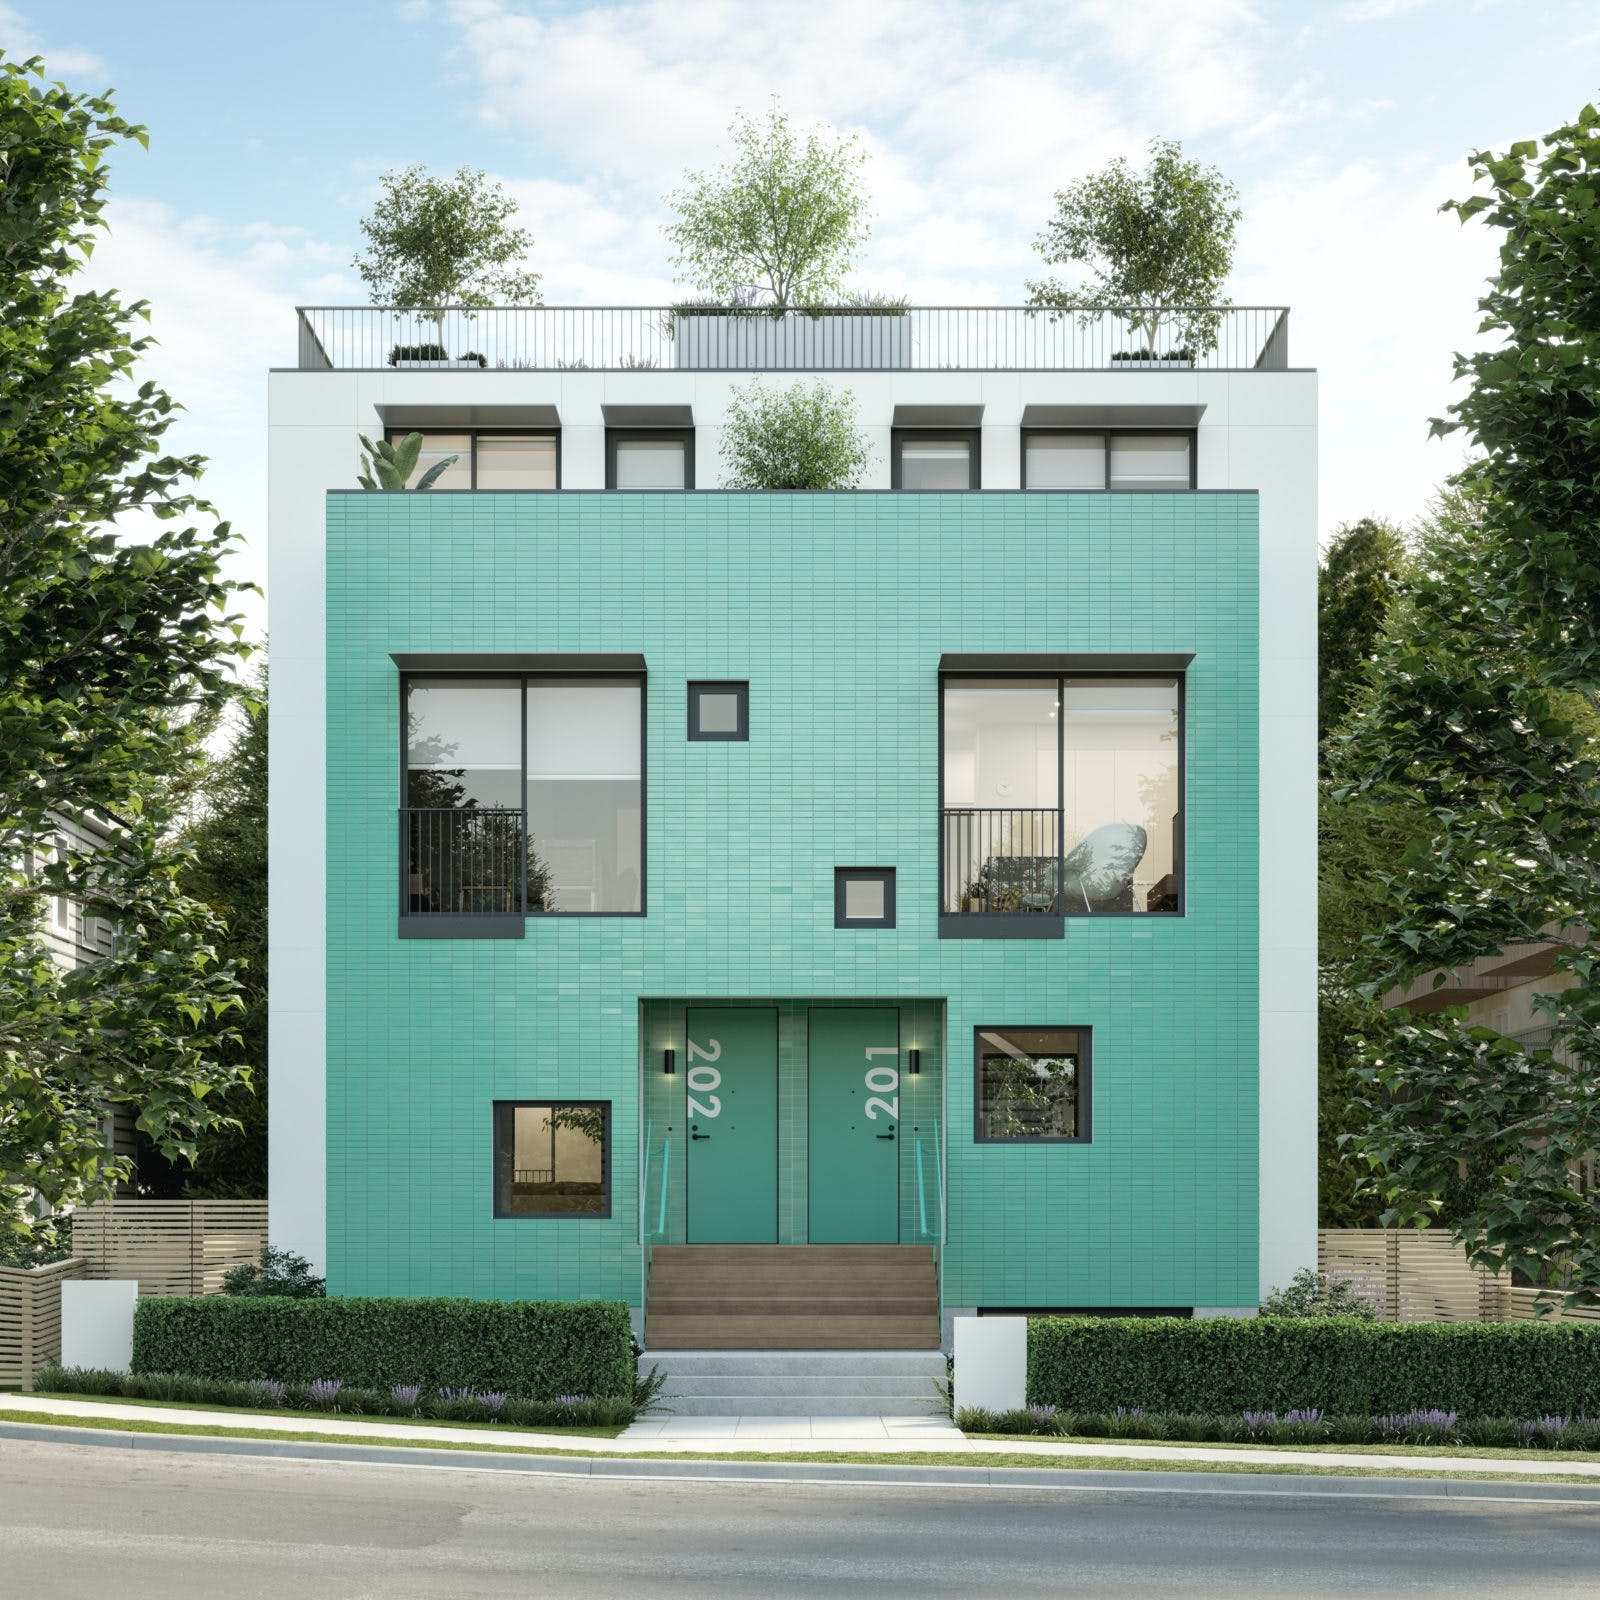 La Menta Commercial Drive Townhouses By South Street – Availability, Plans, Prices